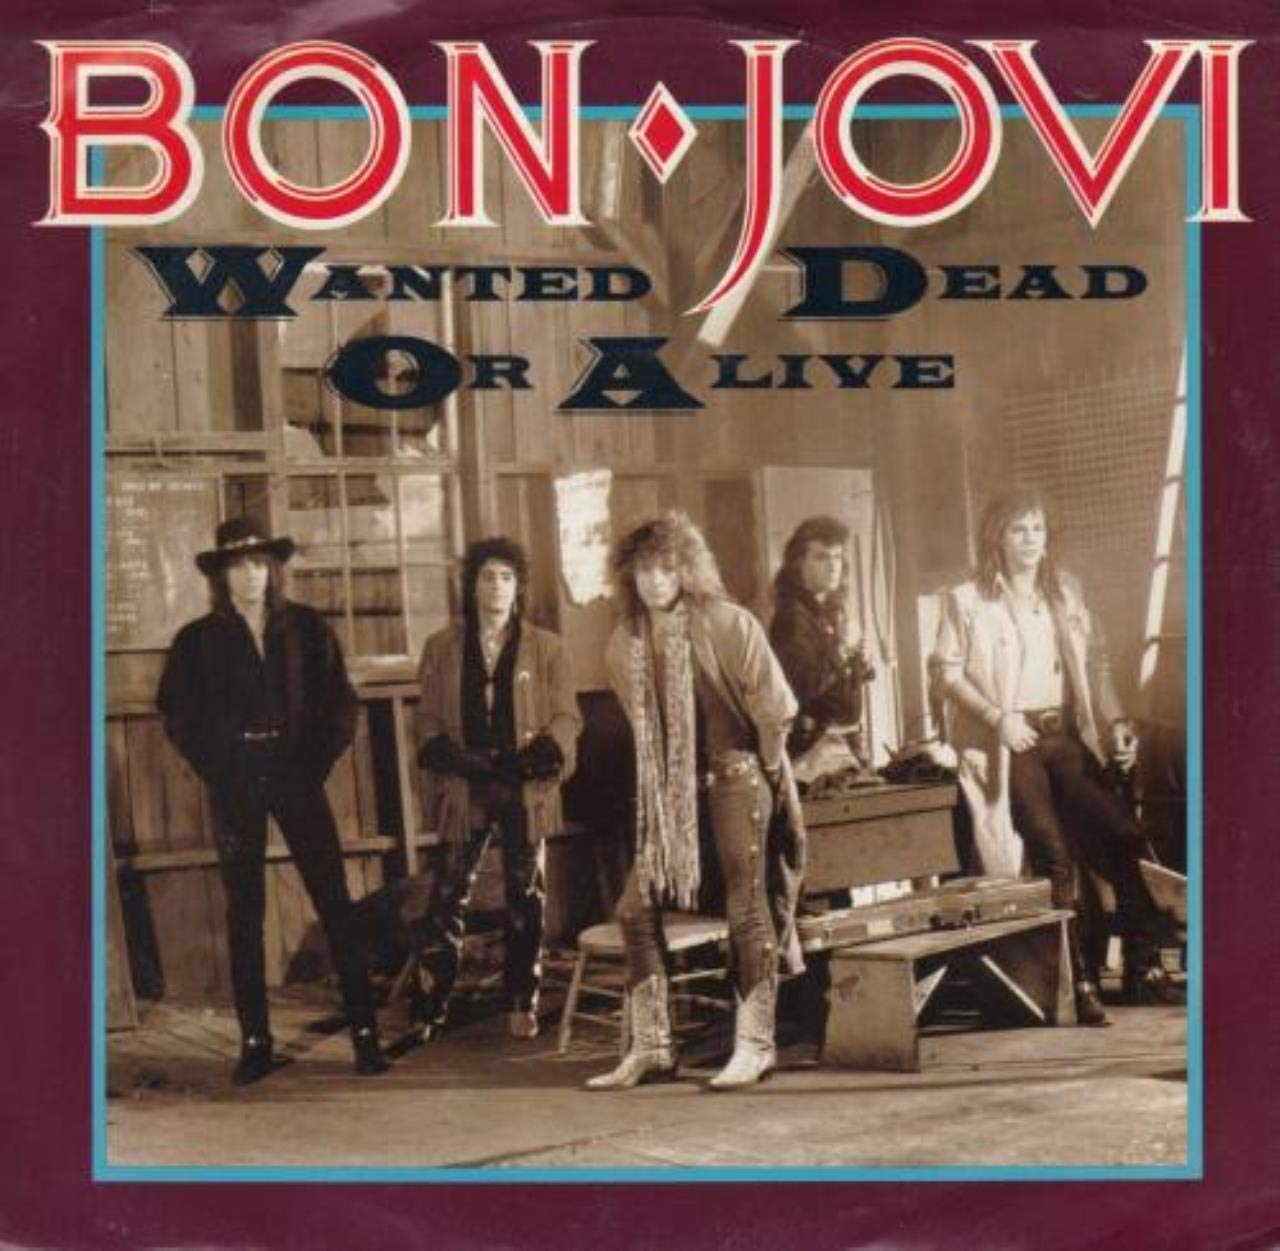 bon jovi wanted dead or alive free download